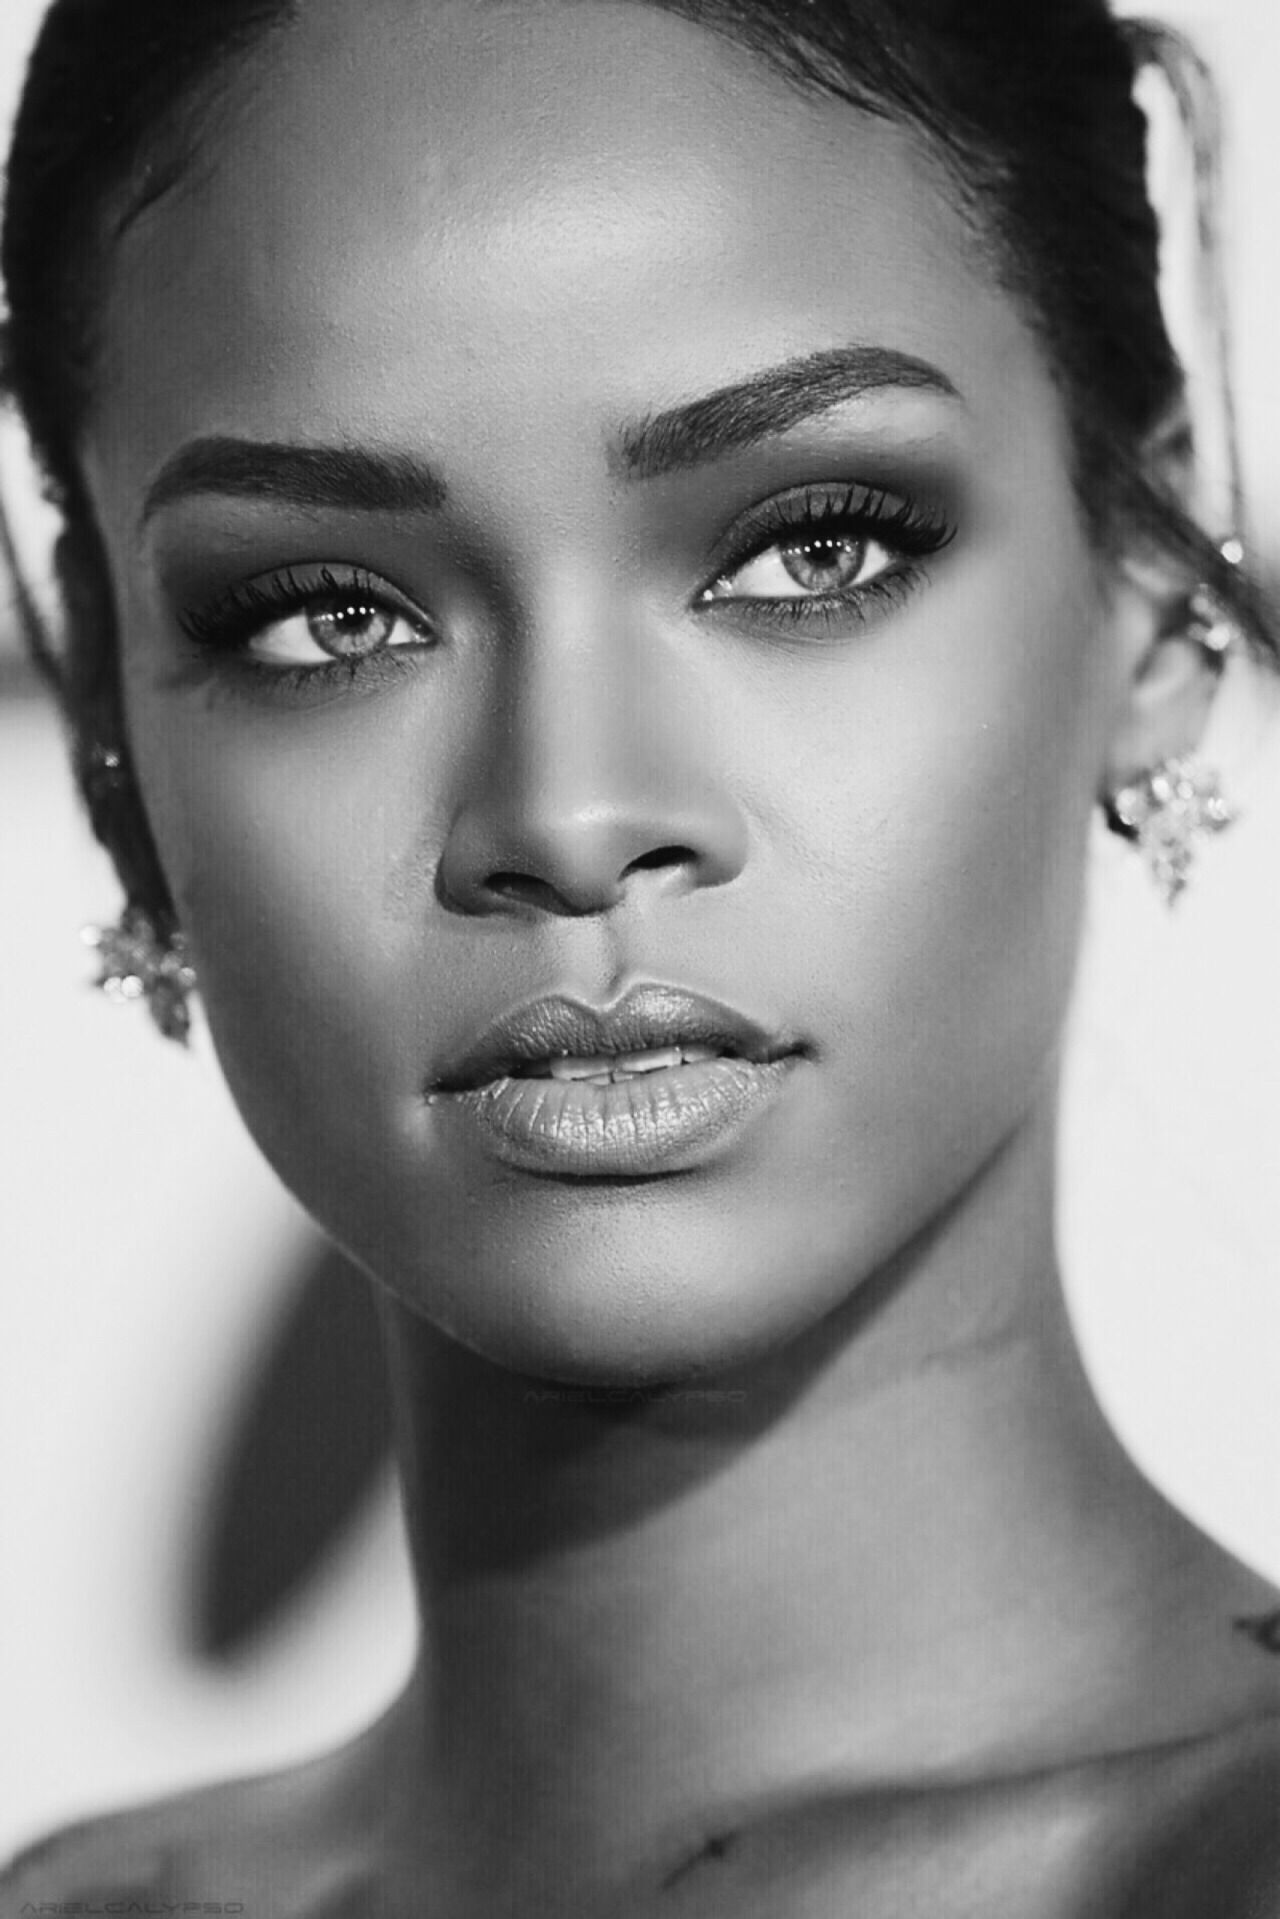 650ed75bcc16b Rihanna One of the better pics of her face.